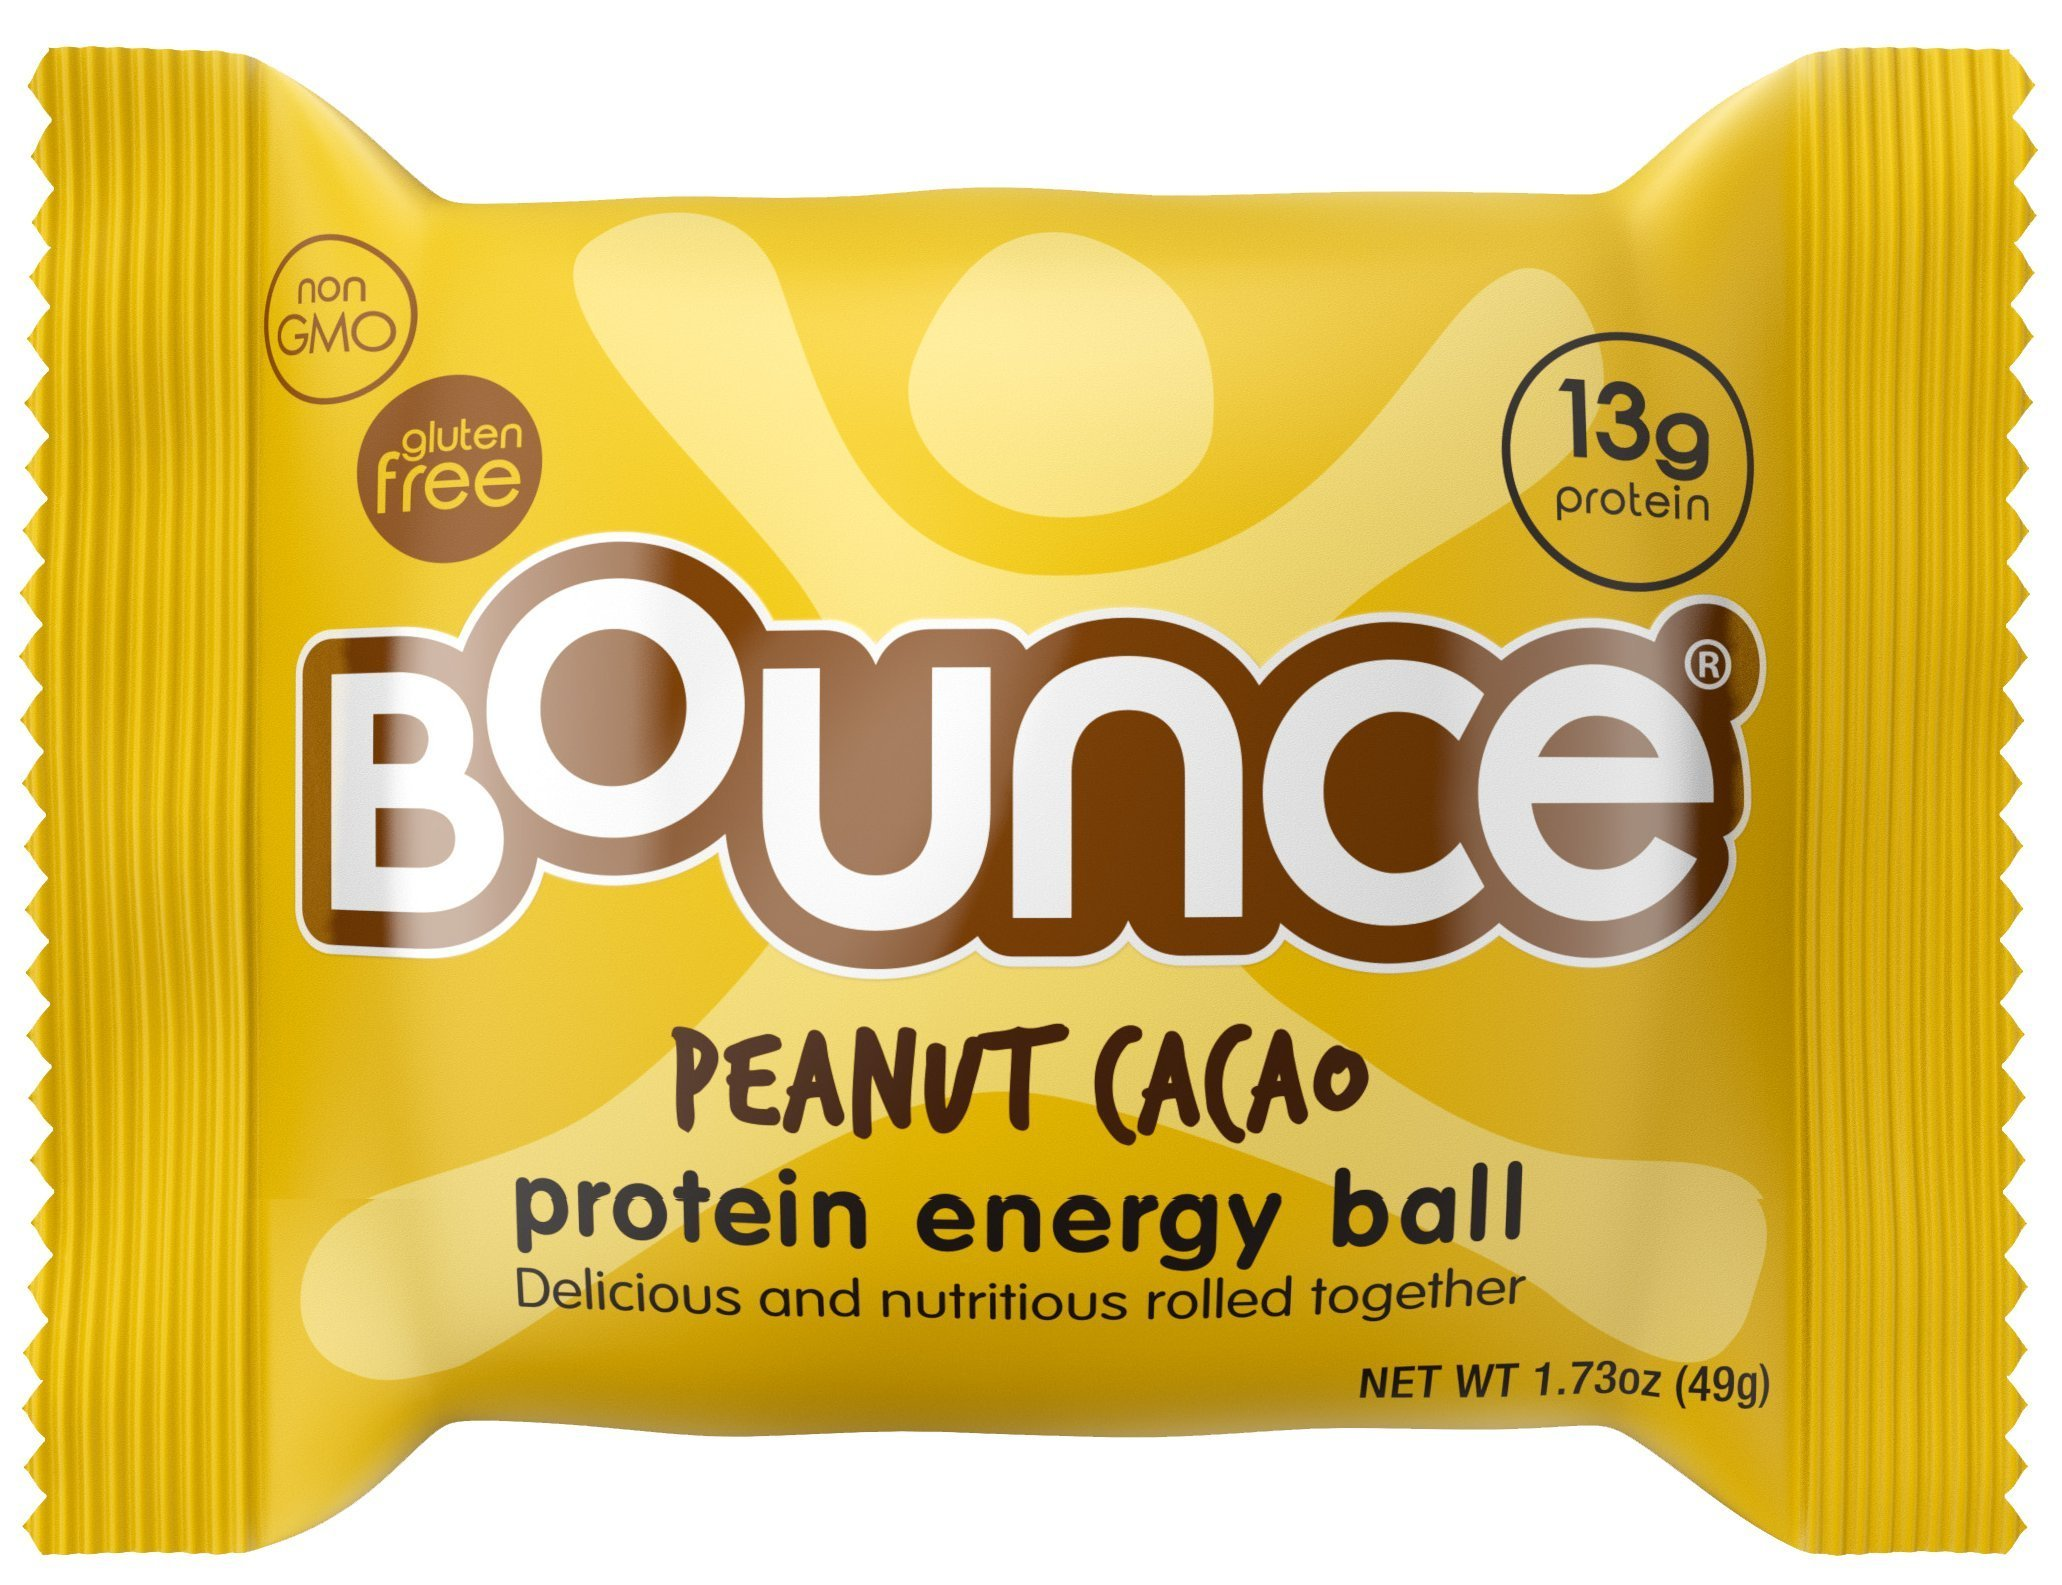 Bounce Peanut Cacao Protein Energy Ball - Whey Protein, Gluten Free, Non-GMO, Vegetarian, On The Go Snack - 1.73 Ounce, 12 count